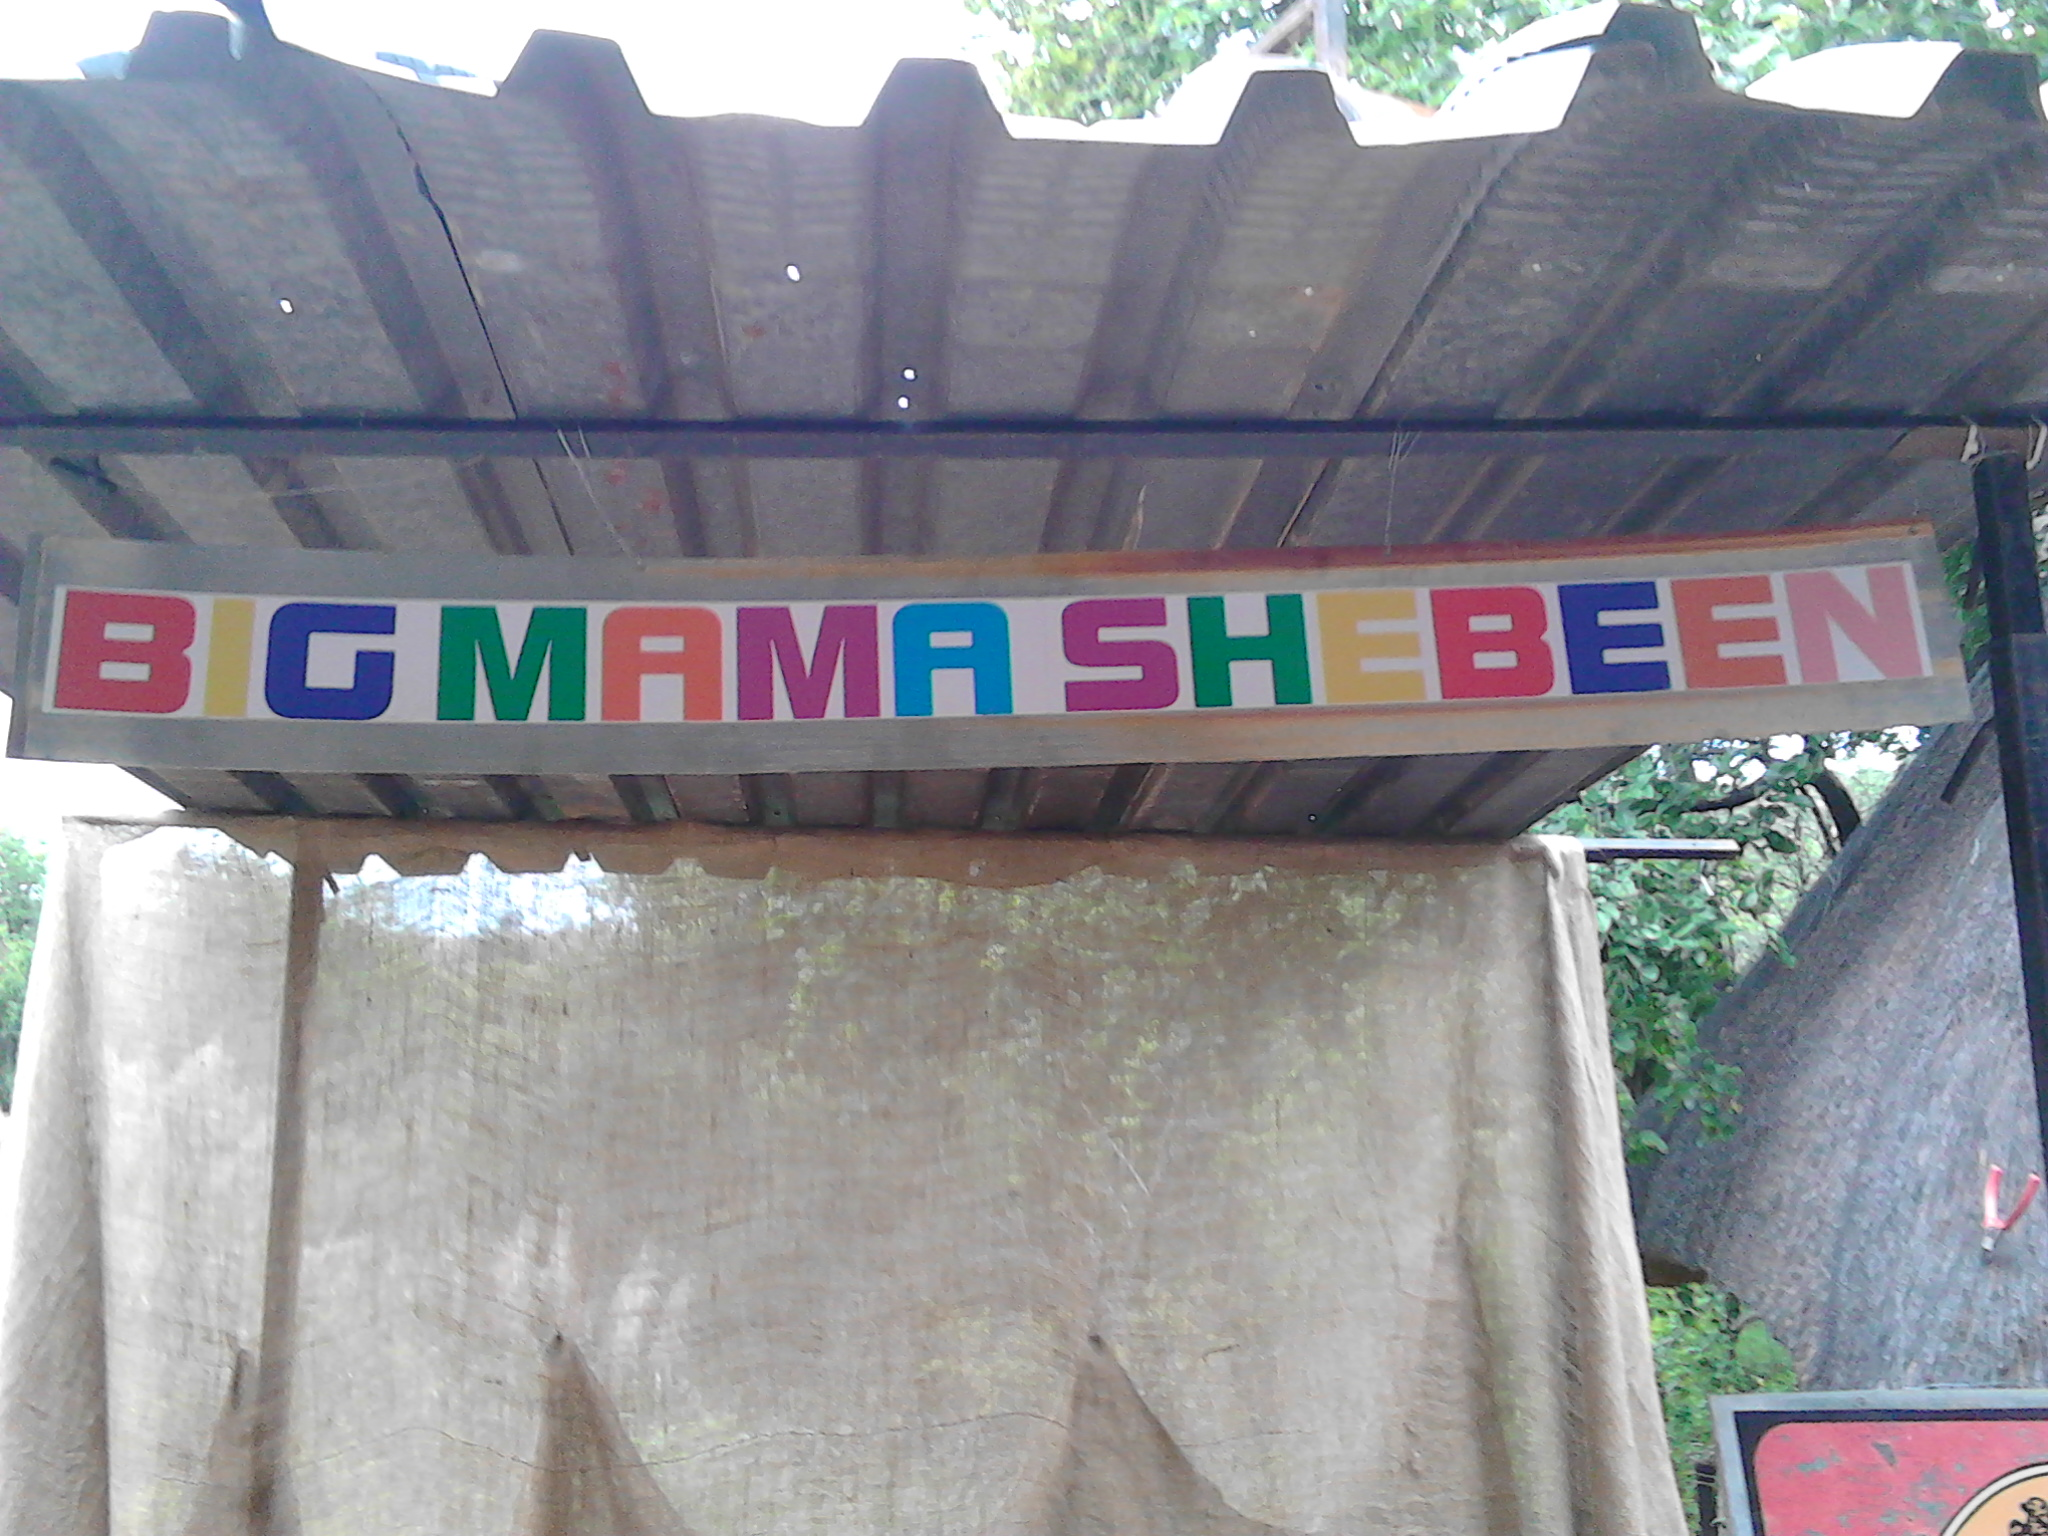 big-mama-shebeen-sign